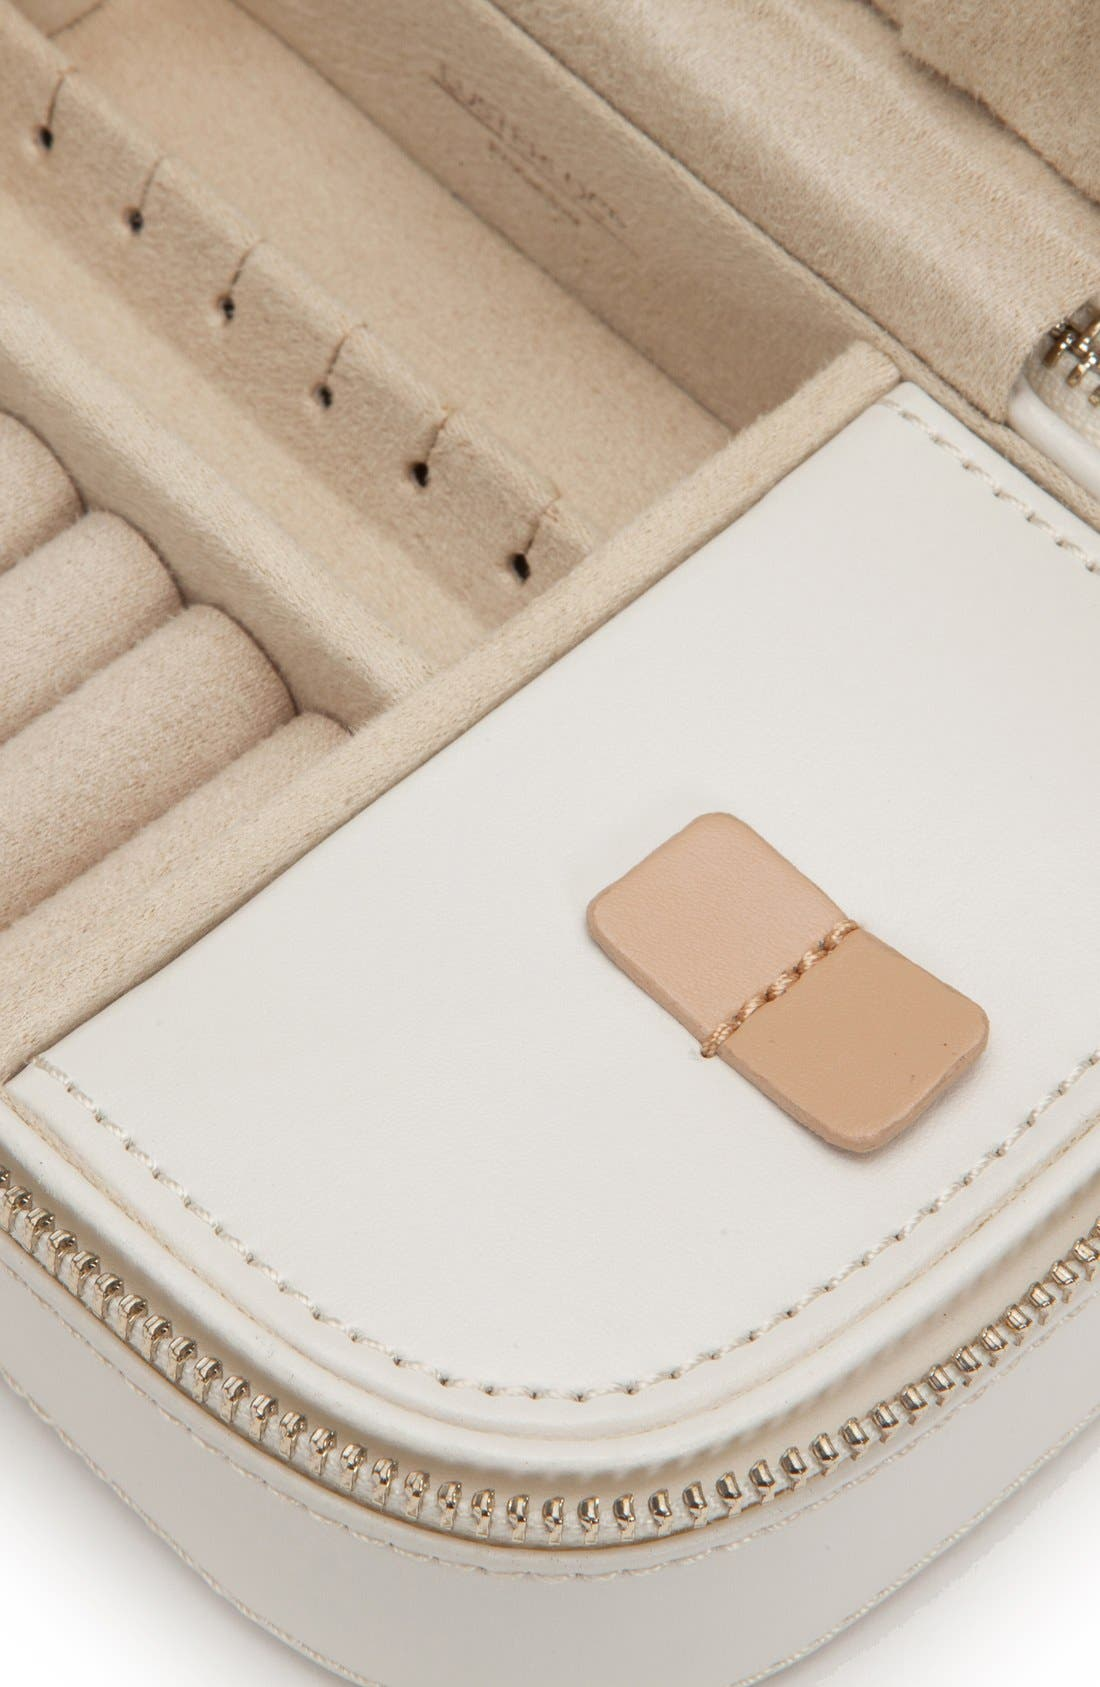 'Chloe' Zip Jewelry Case,                             Alternate thumbnail 2, color,                             900